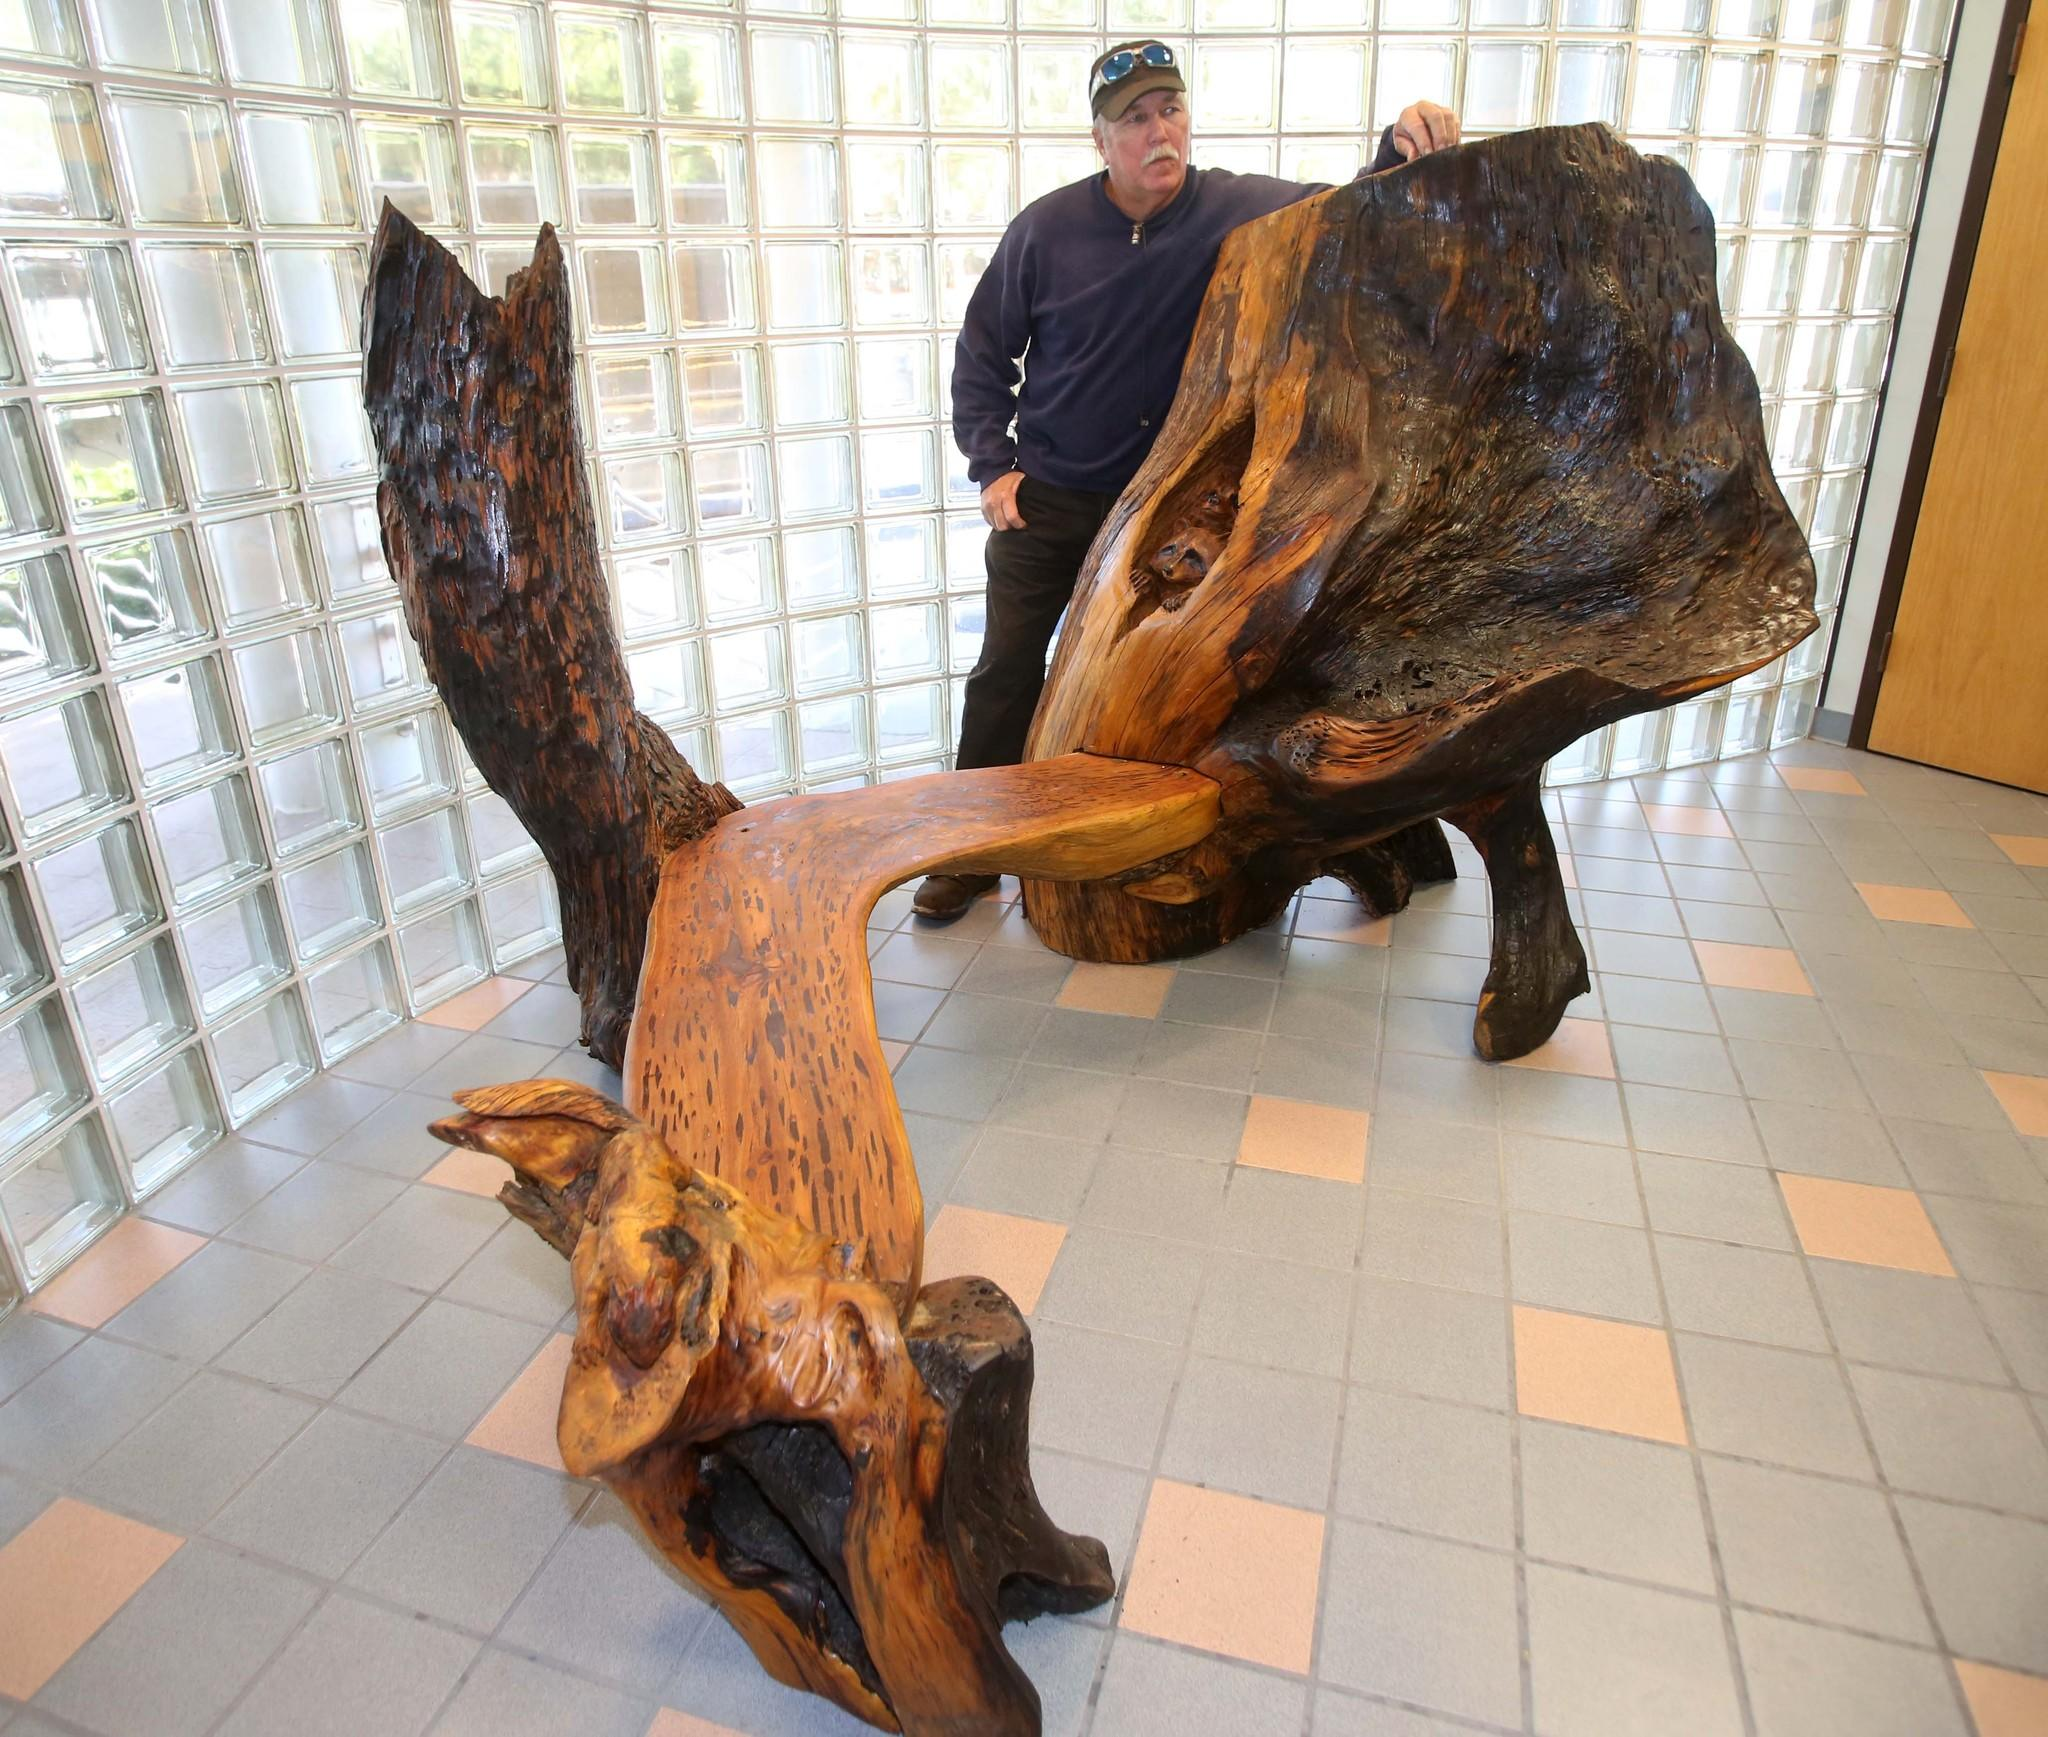 Artist Mark Rice created this bench with old wood from The Senator, an ancient cypress tree destroyed by fire. The bench is in front of the Seminole county commission chambers in Sanford.